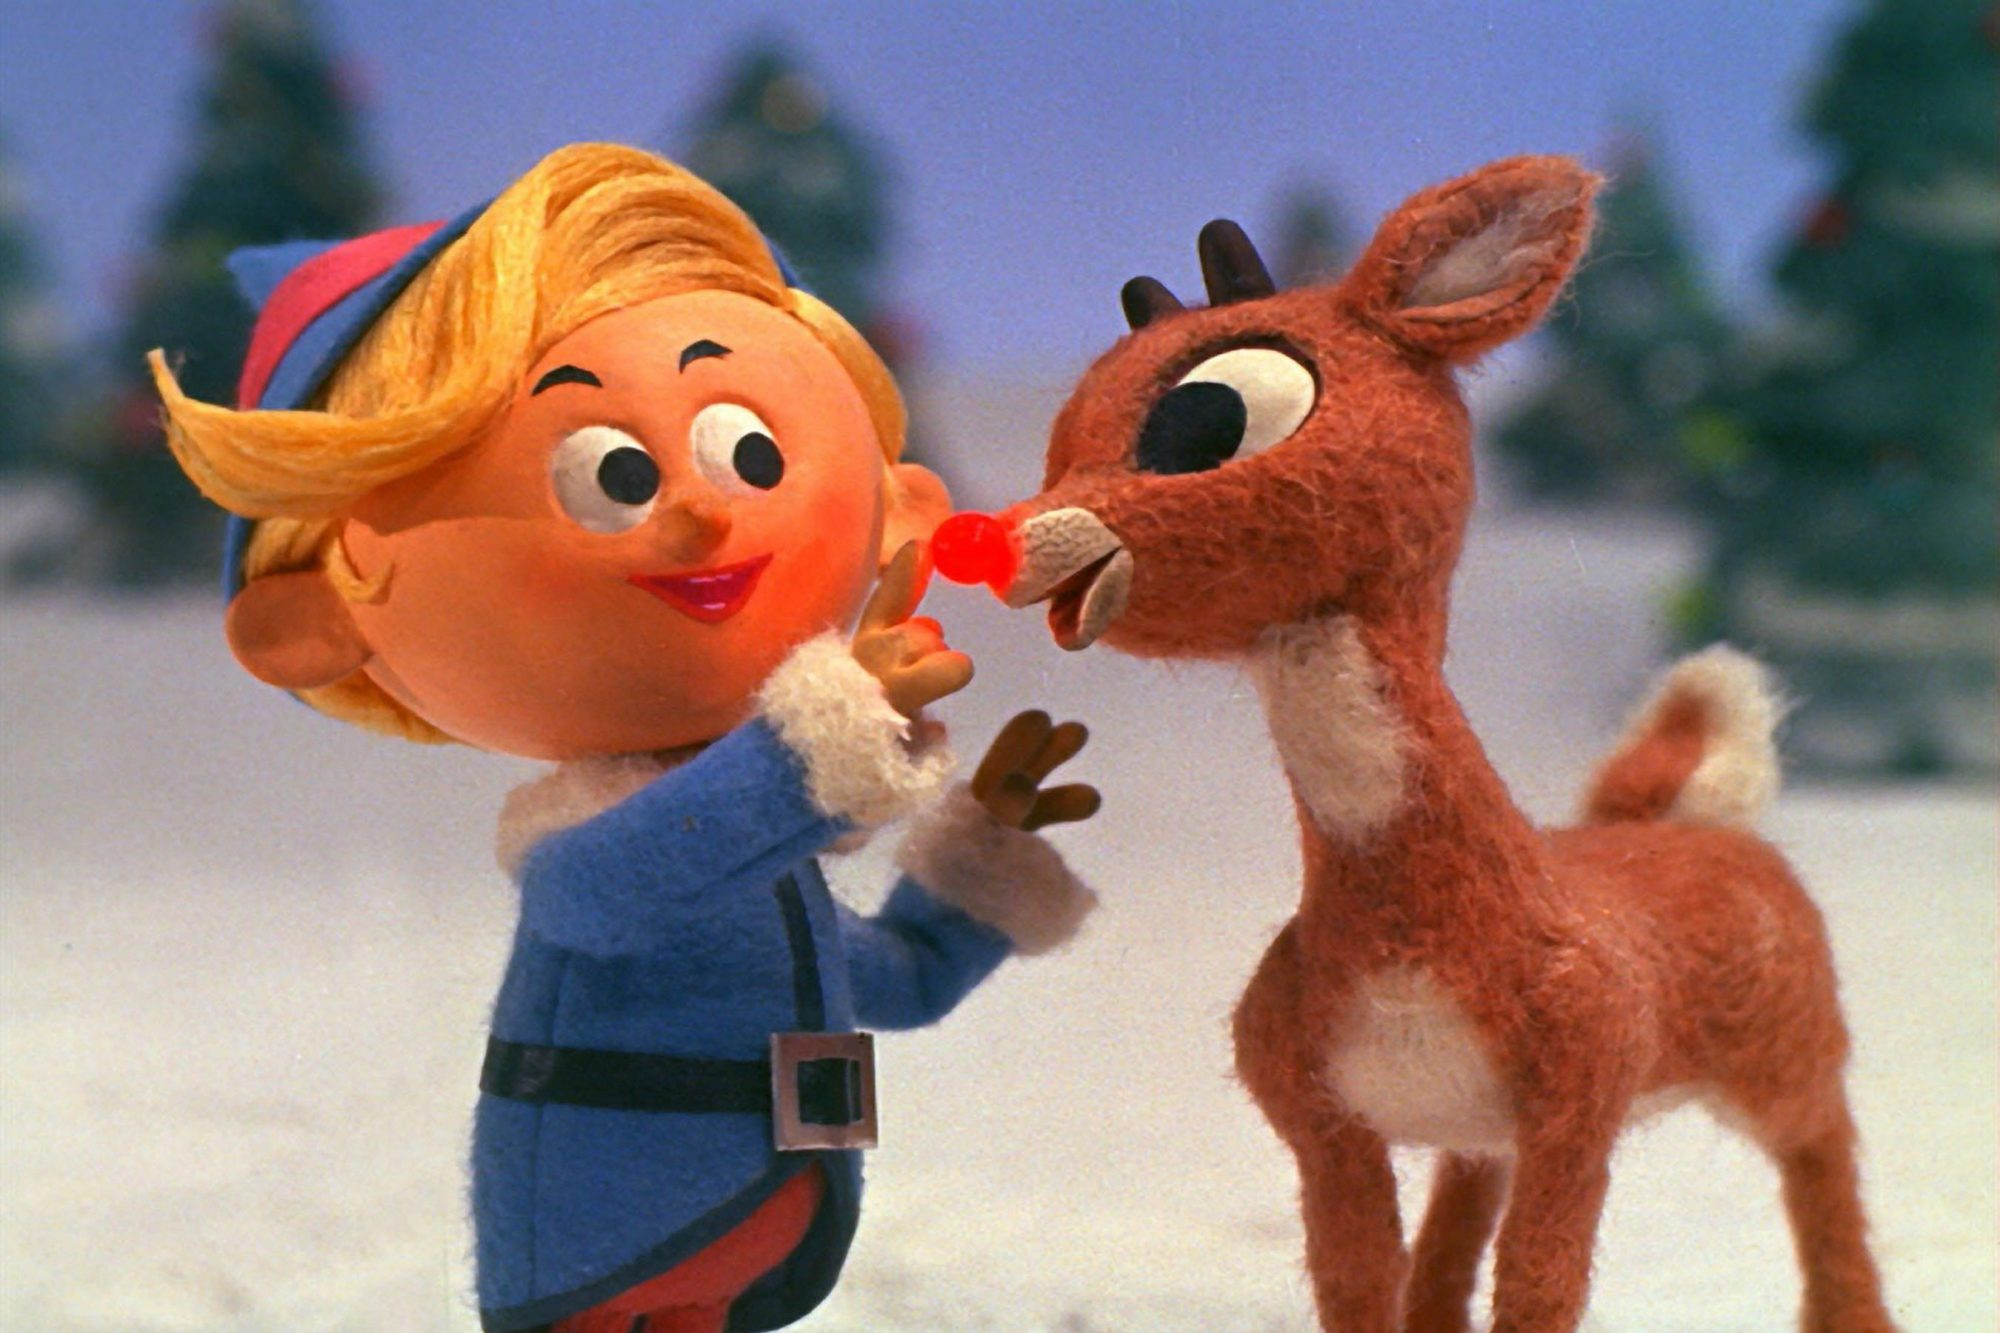 10. Rudolph the Red-Nosed Reindeer (1964)